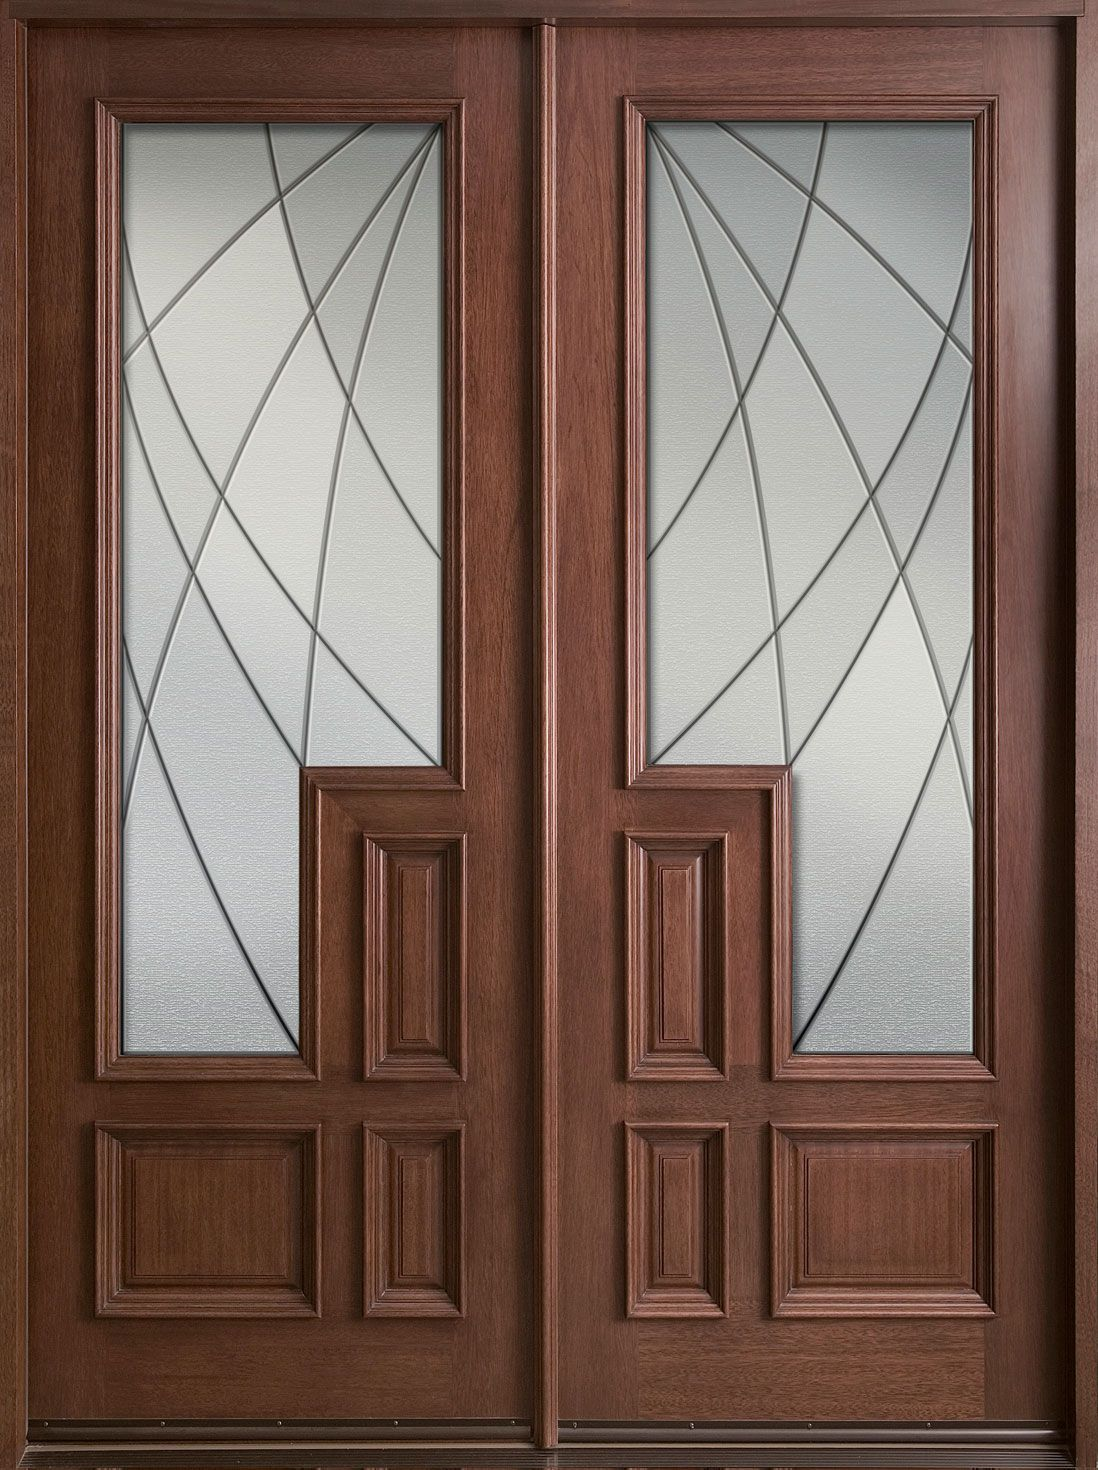 Inspiring double fiberglass entry door as furniture for for Entry double door designs